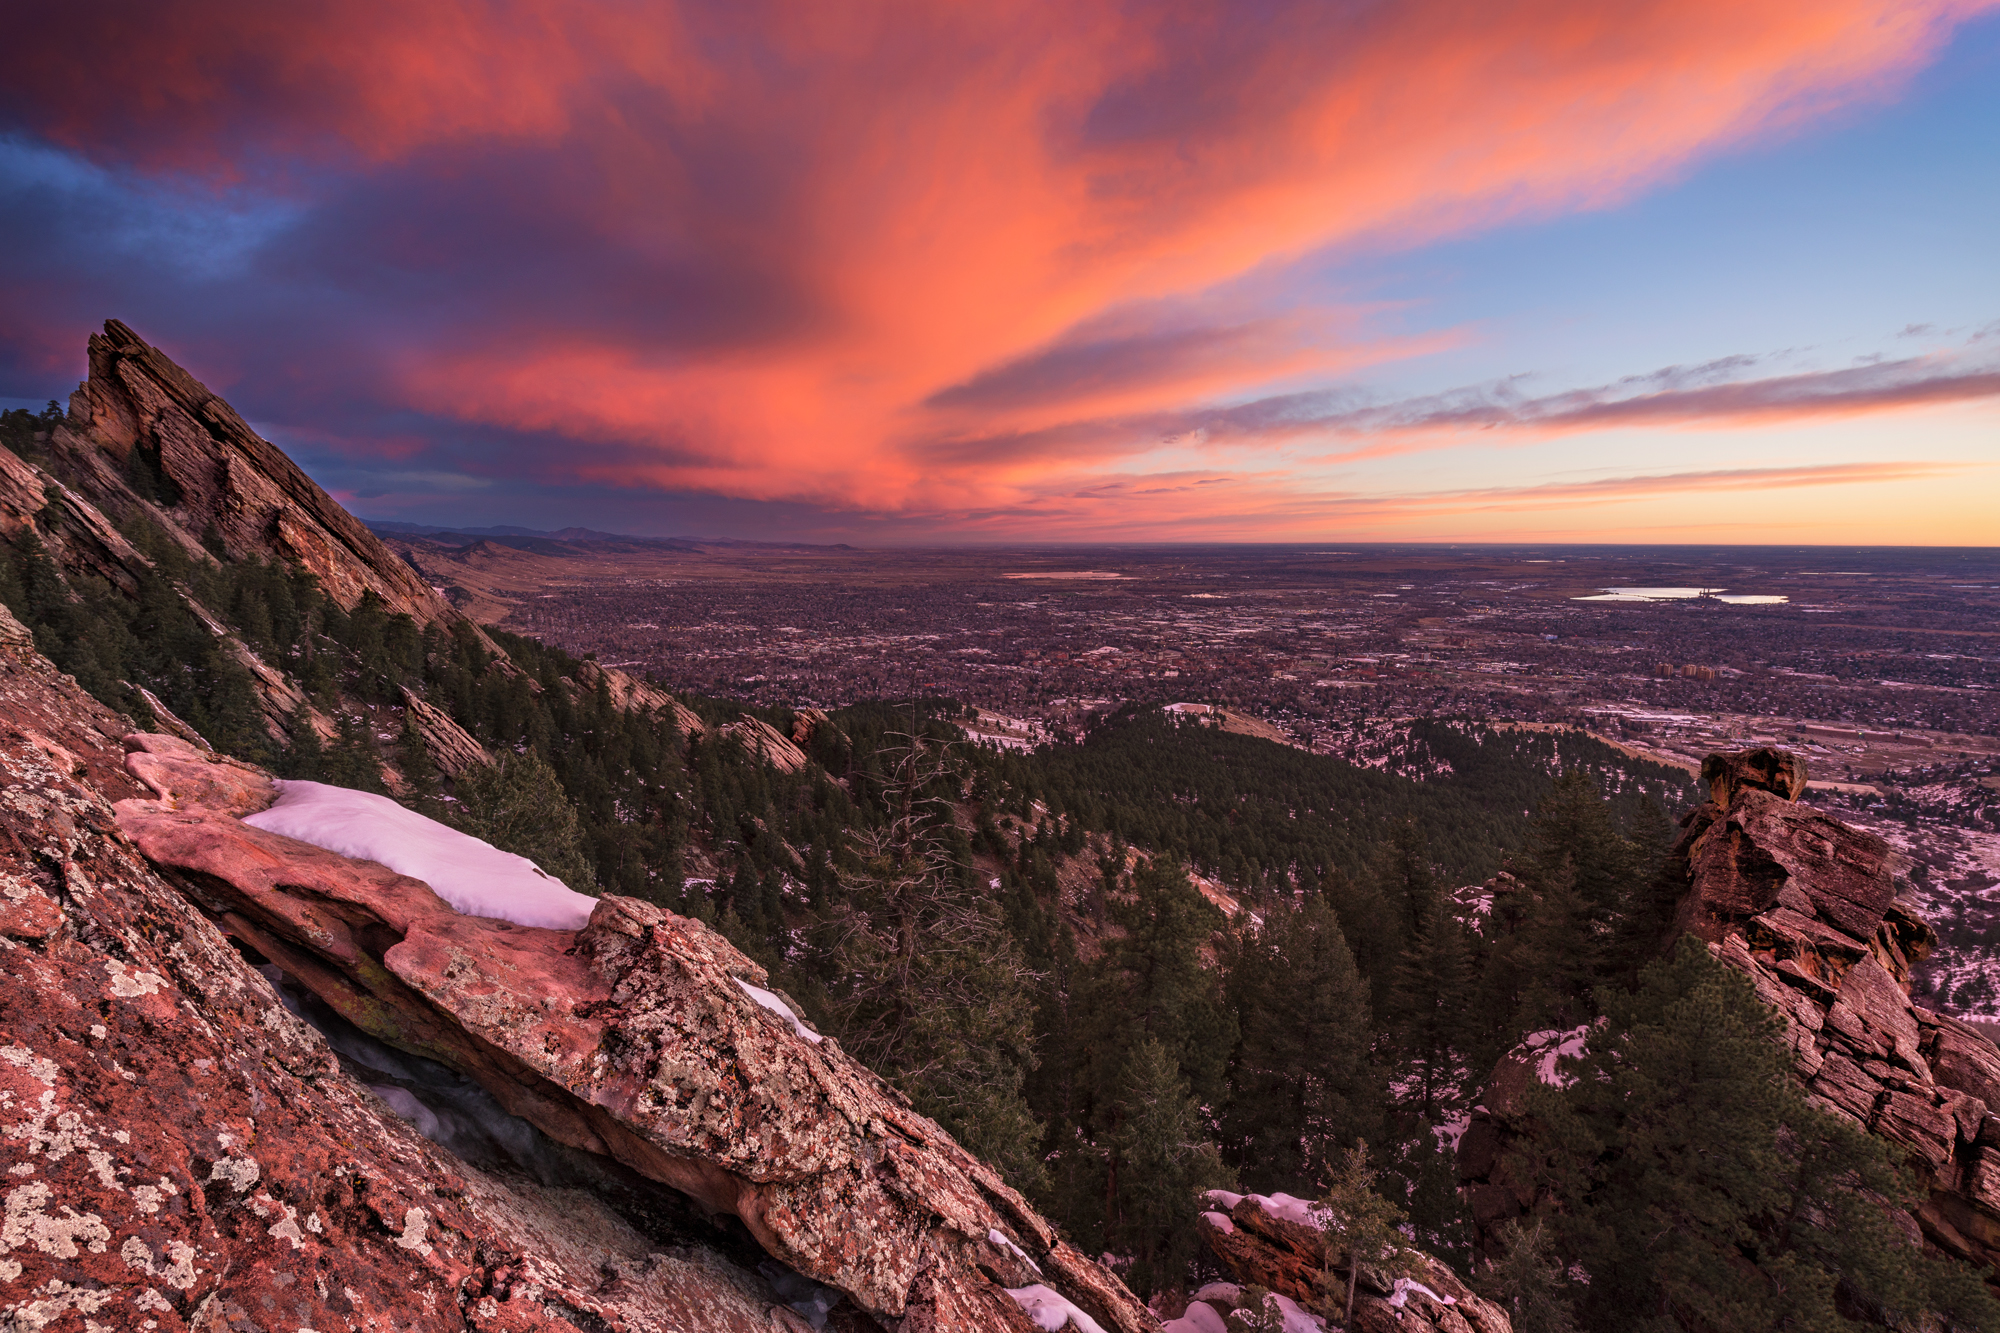 Boulder View, Approaching Dawn. Boulder, Colorado, 2014